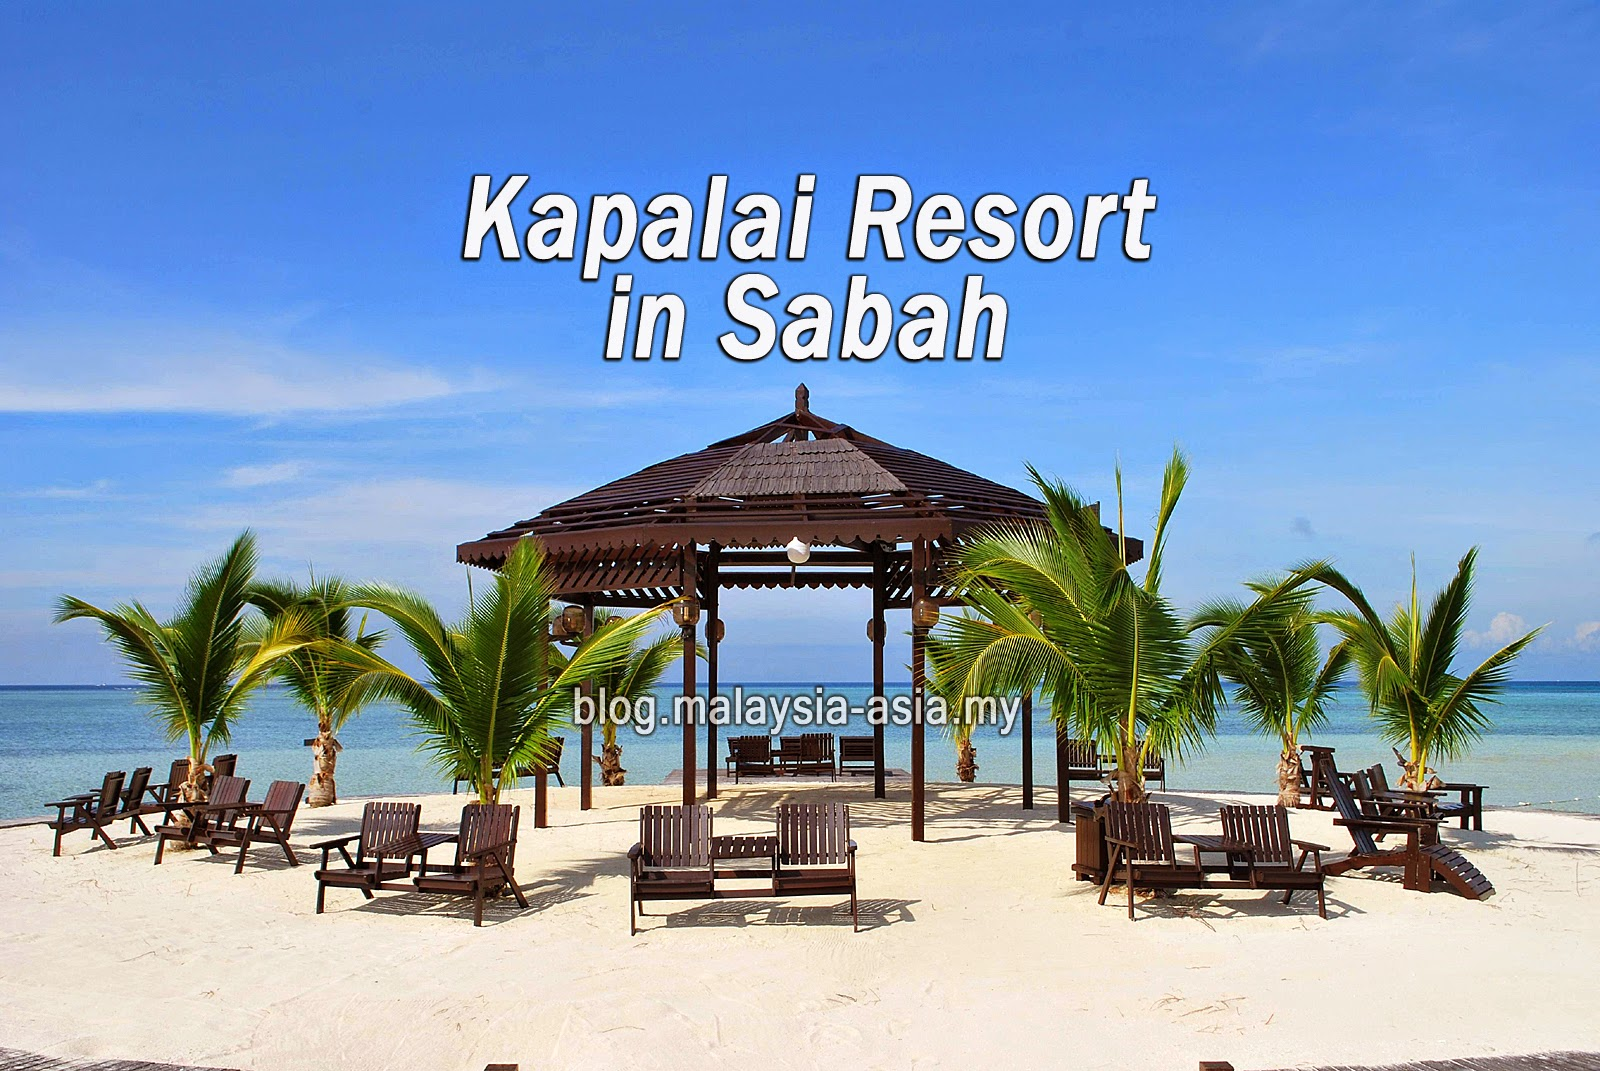 Kapalai island resort in sabah malaysia asia travel blog - Kapalai dive resort price ...